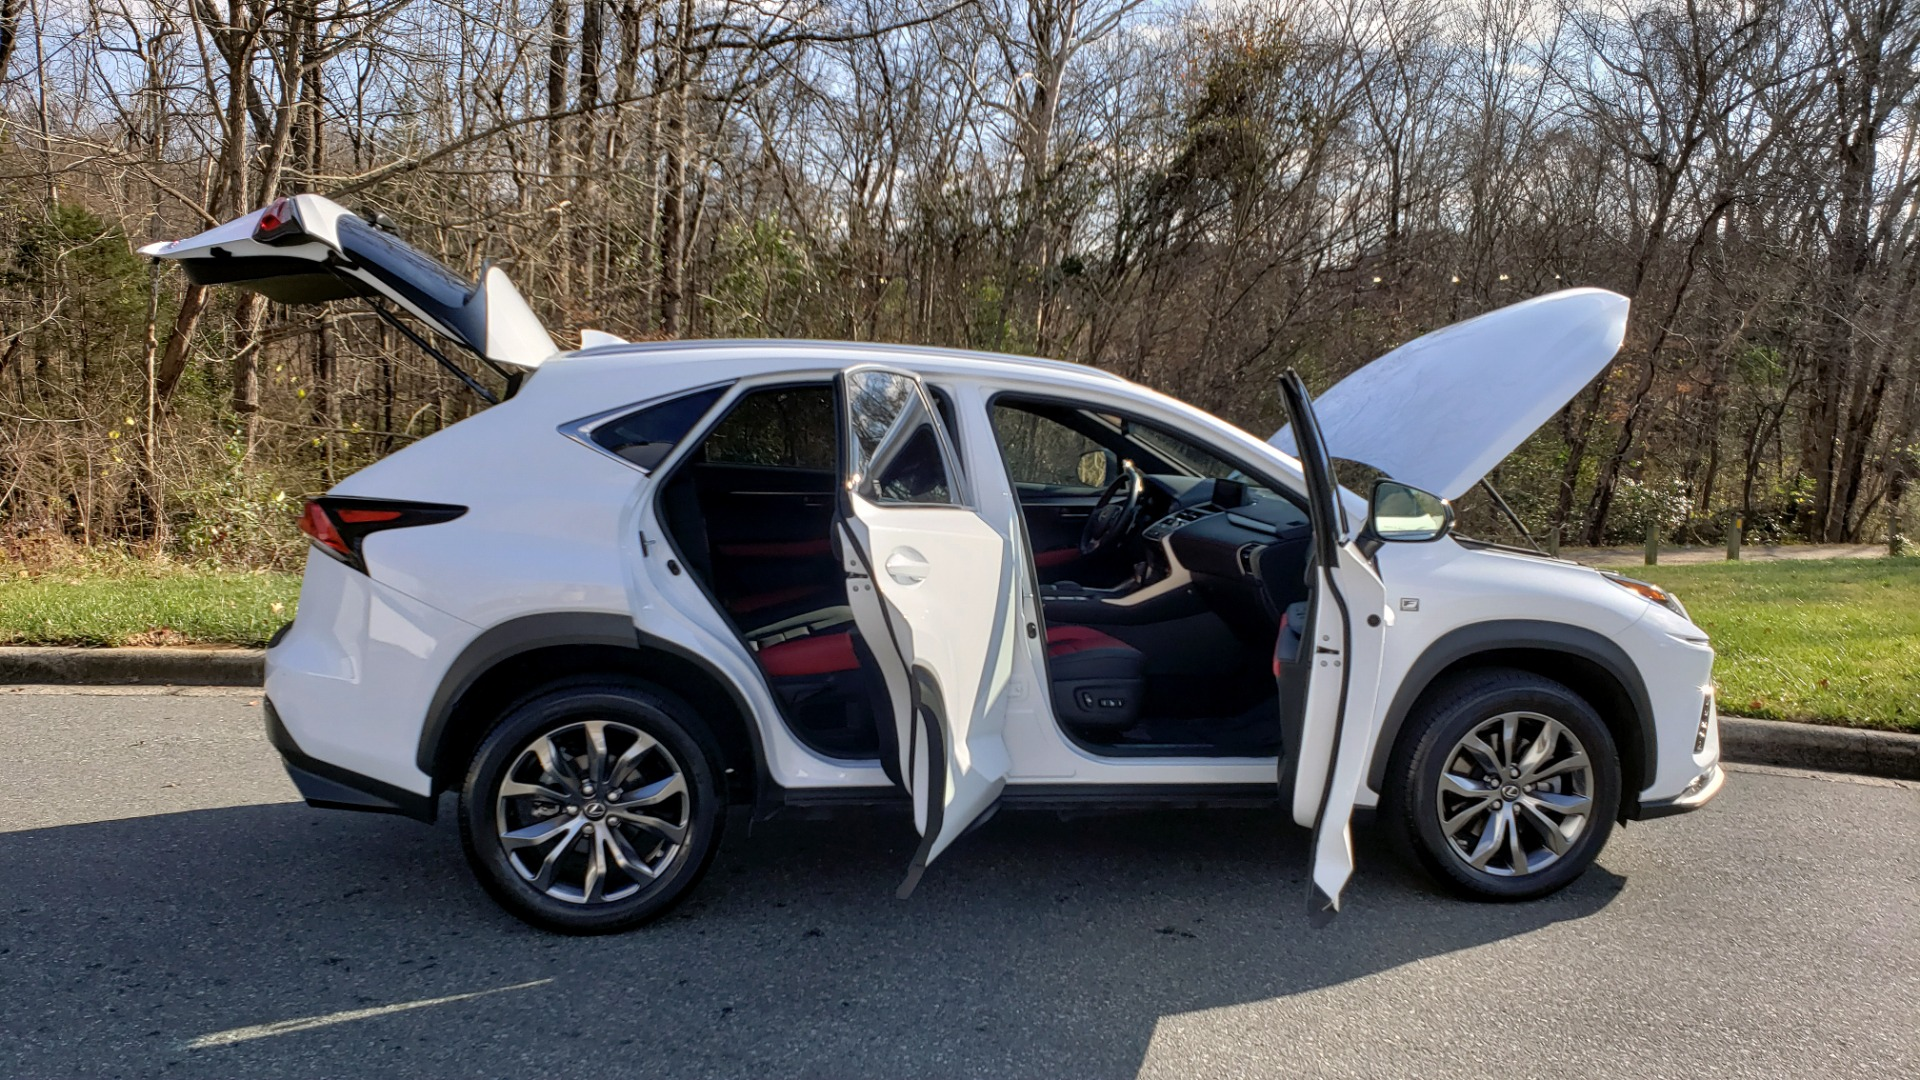 Used 2019 Lexus NX 300 F-SPORT / 2.0L TURBO / LEATHER / 18IN WHEELS / REARVIEW for sale $31,195 at Formula Imports in Charlotte NC 28227 10